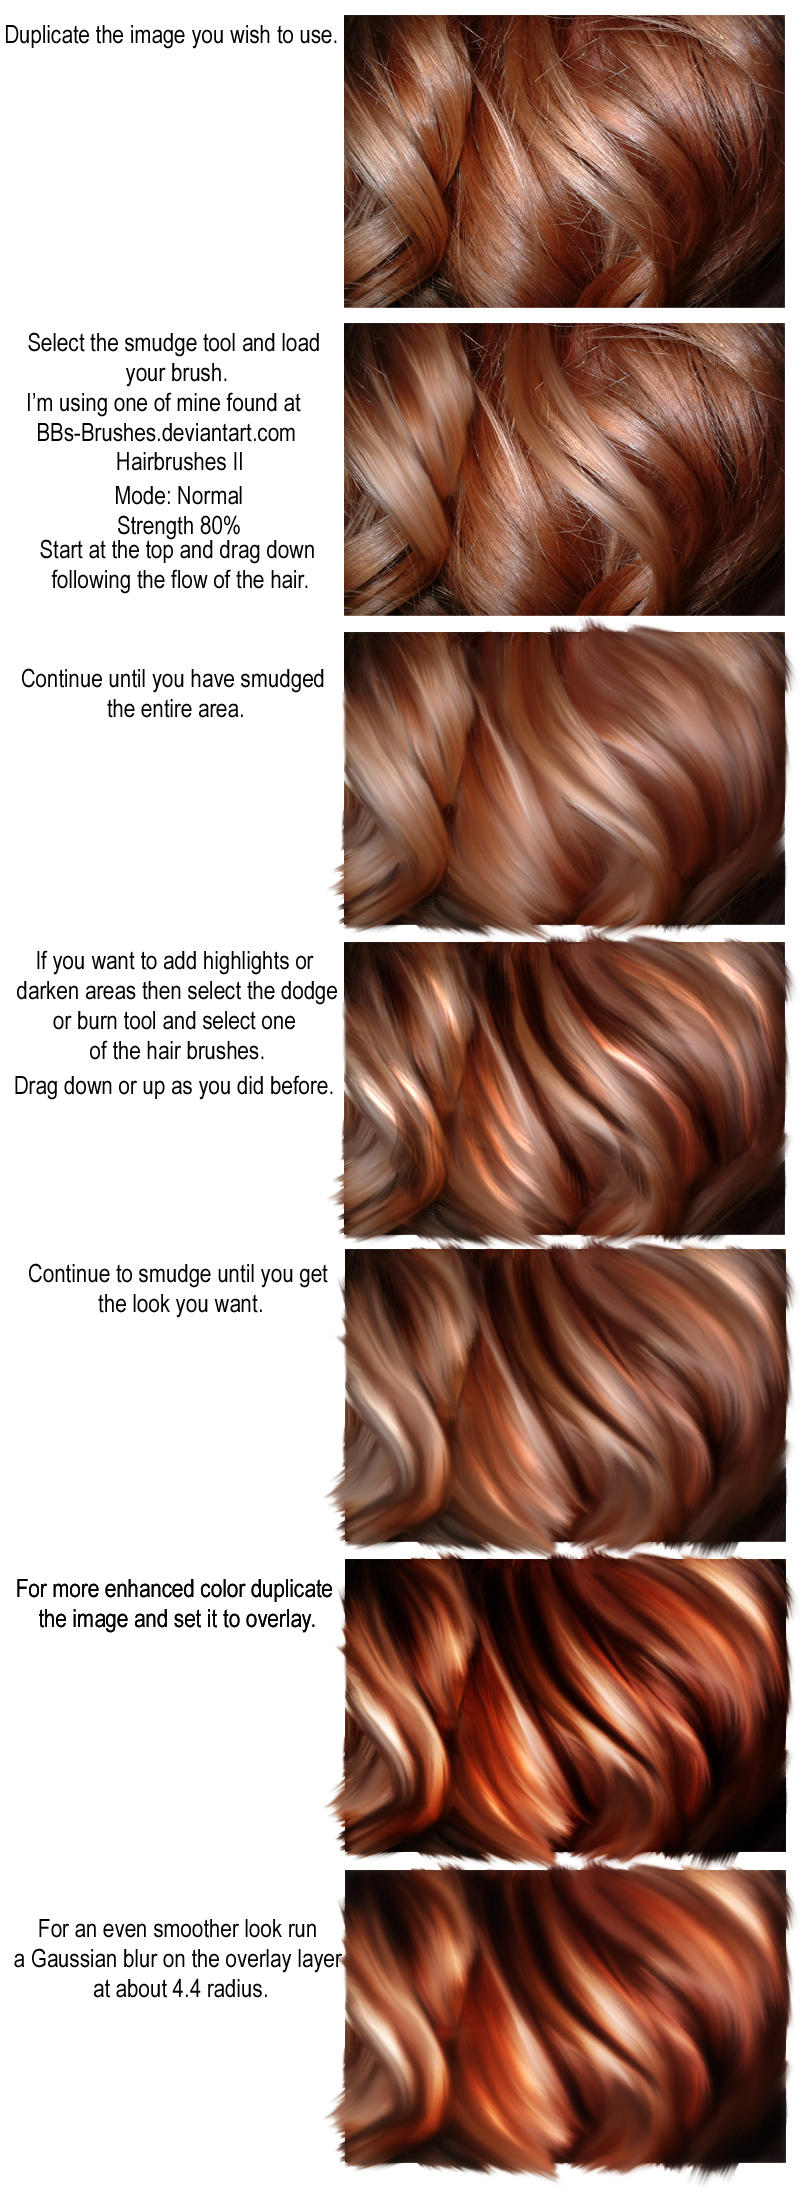 Smudged Hair Tutorial by BBs-Brushes